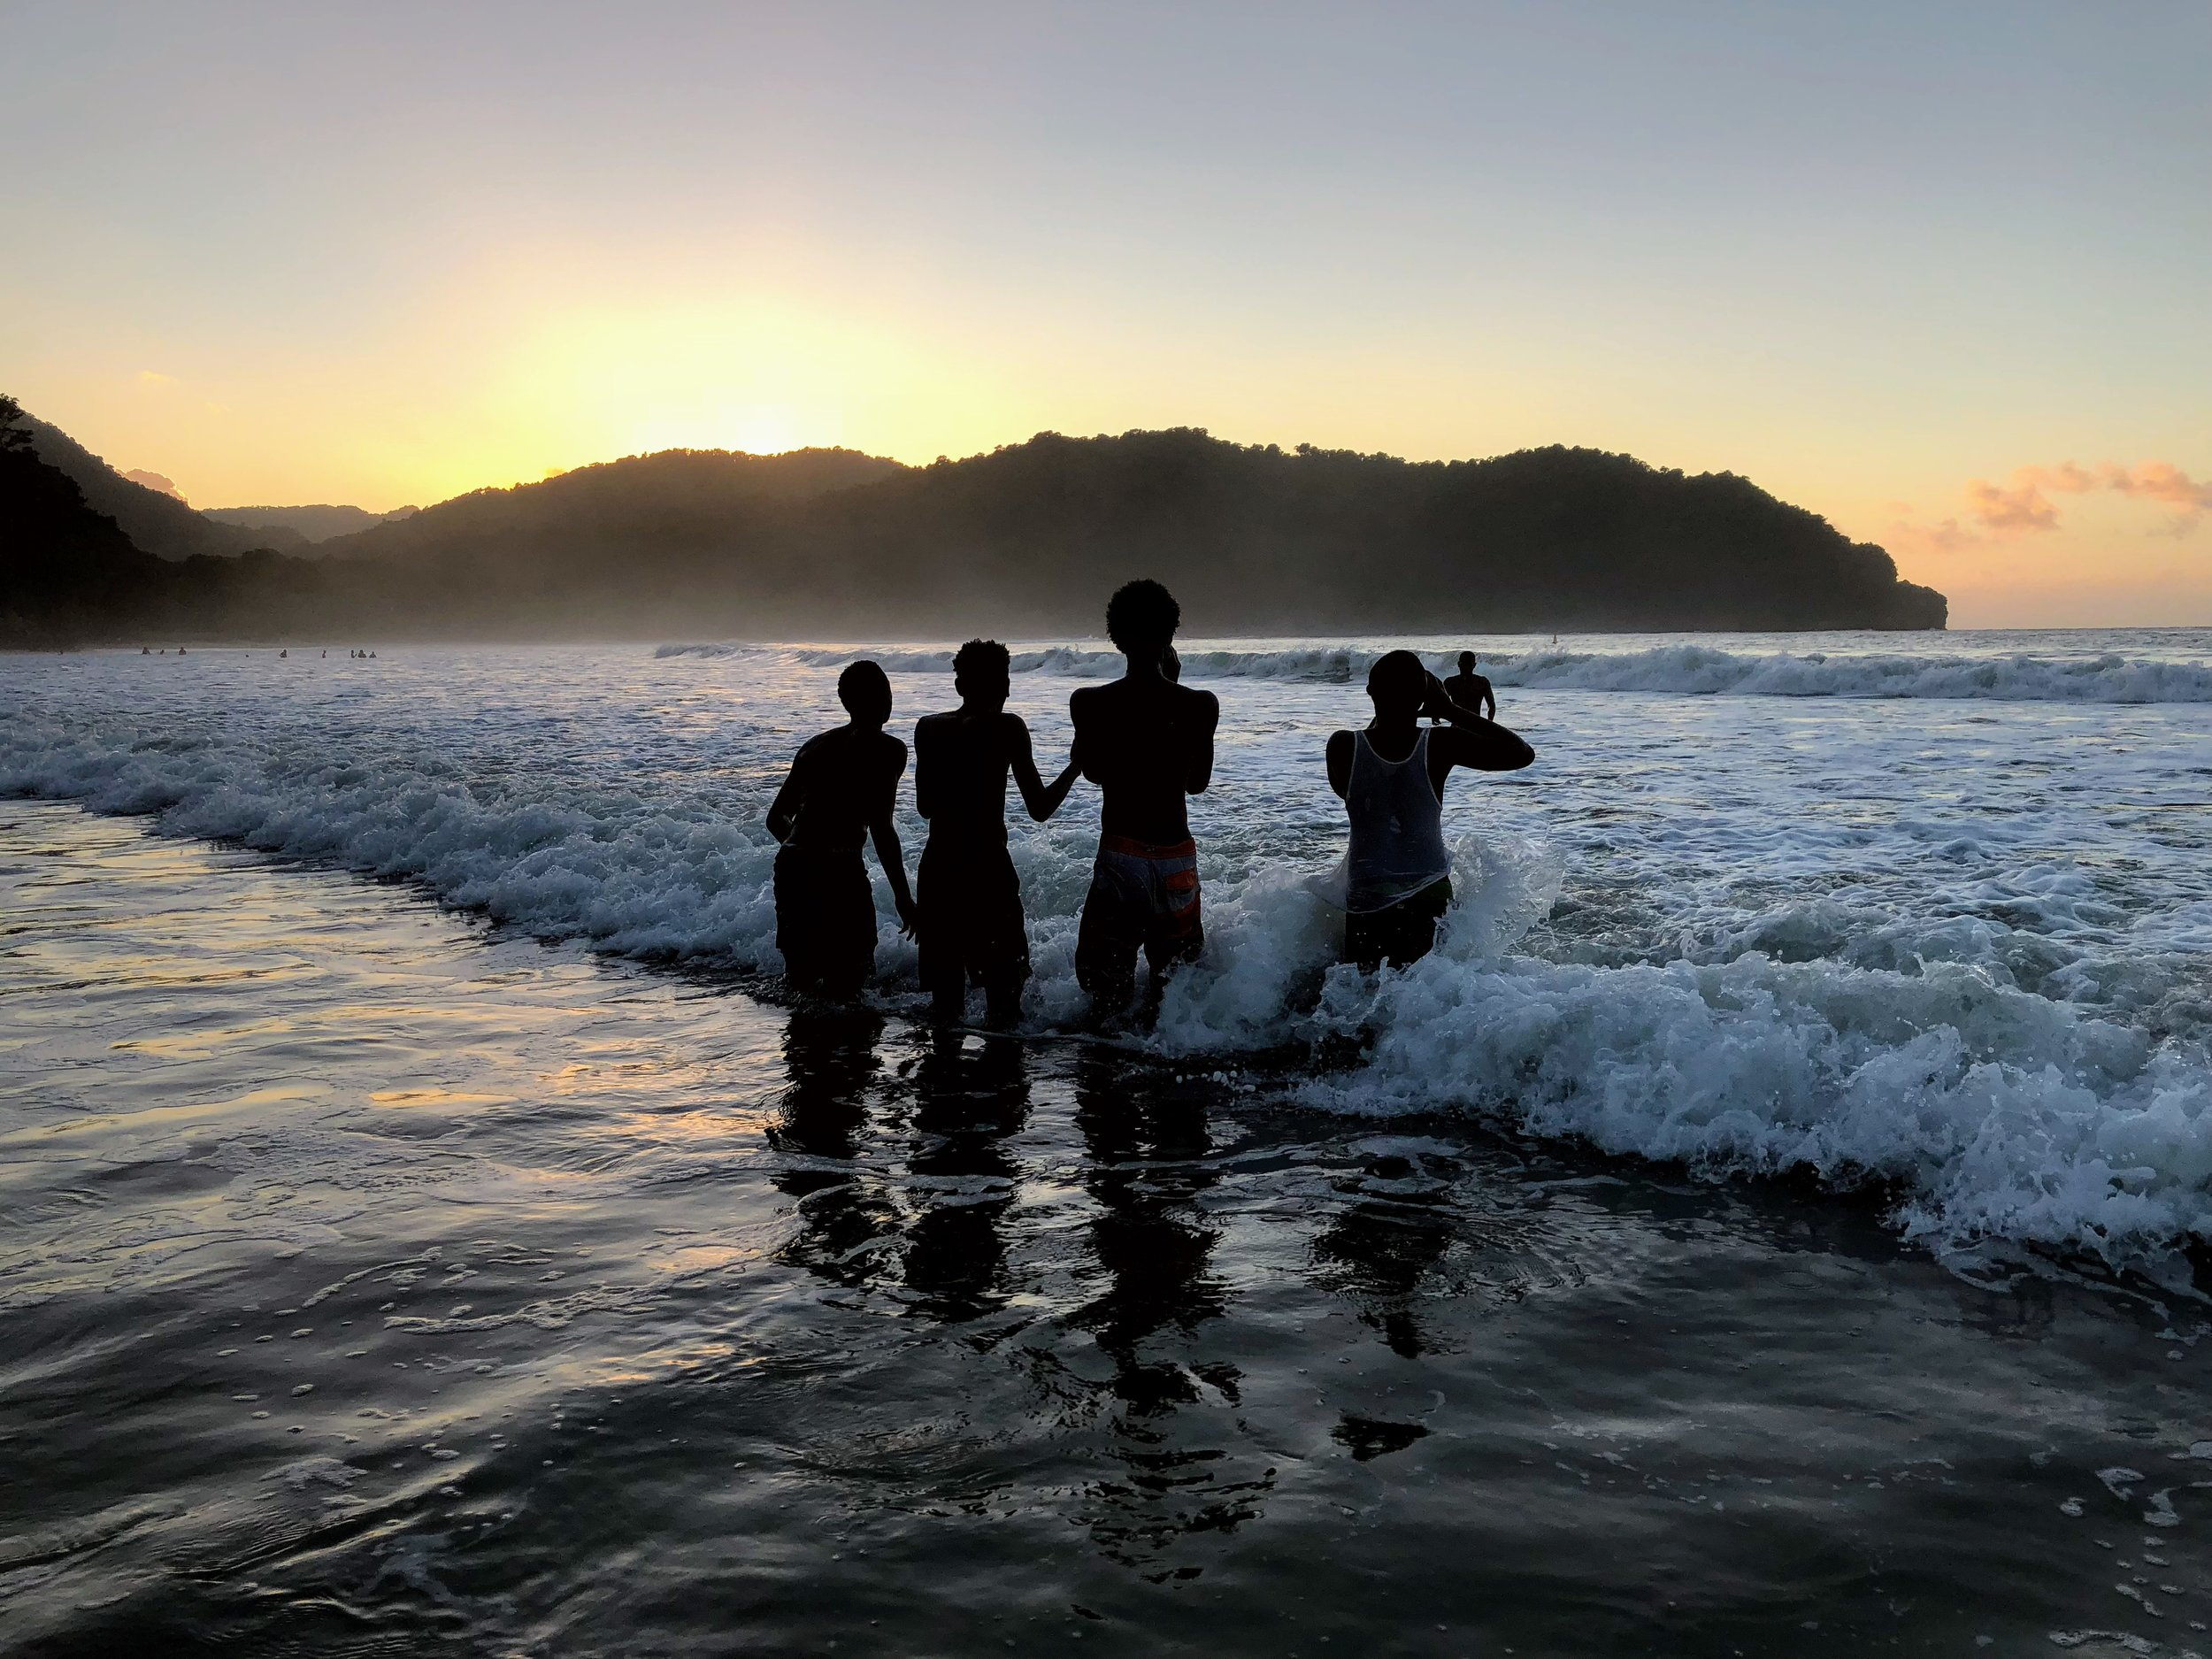 'Black Boys'  Las Cuevas Beach, Trinidad 12/10/17 @ 5:35PM